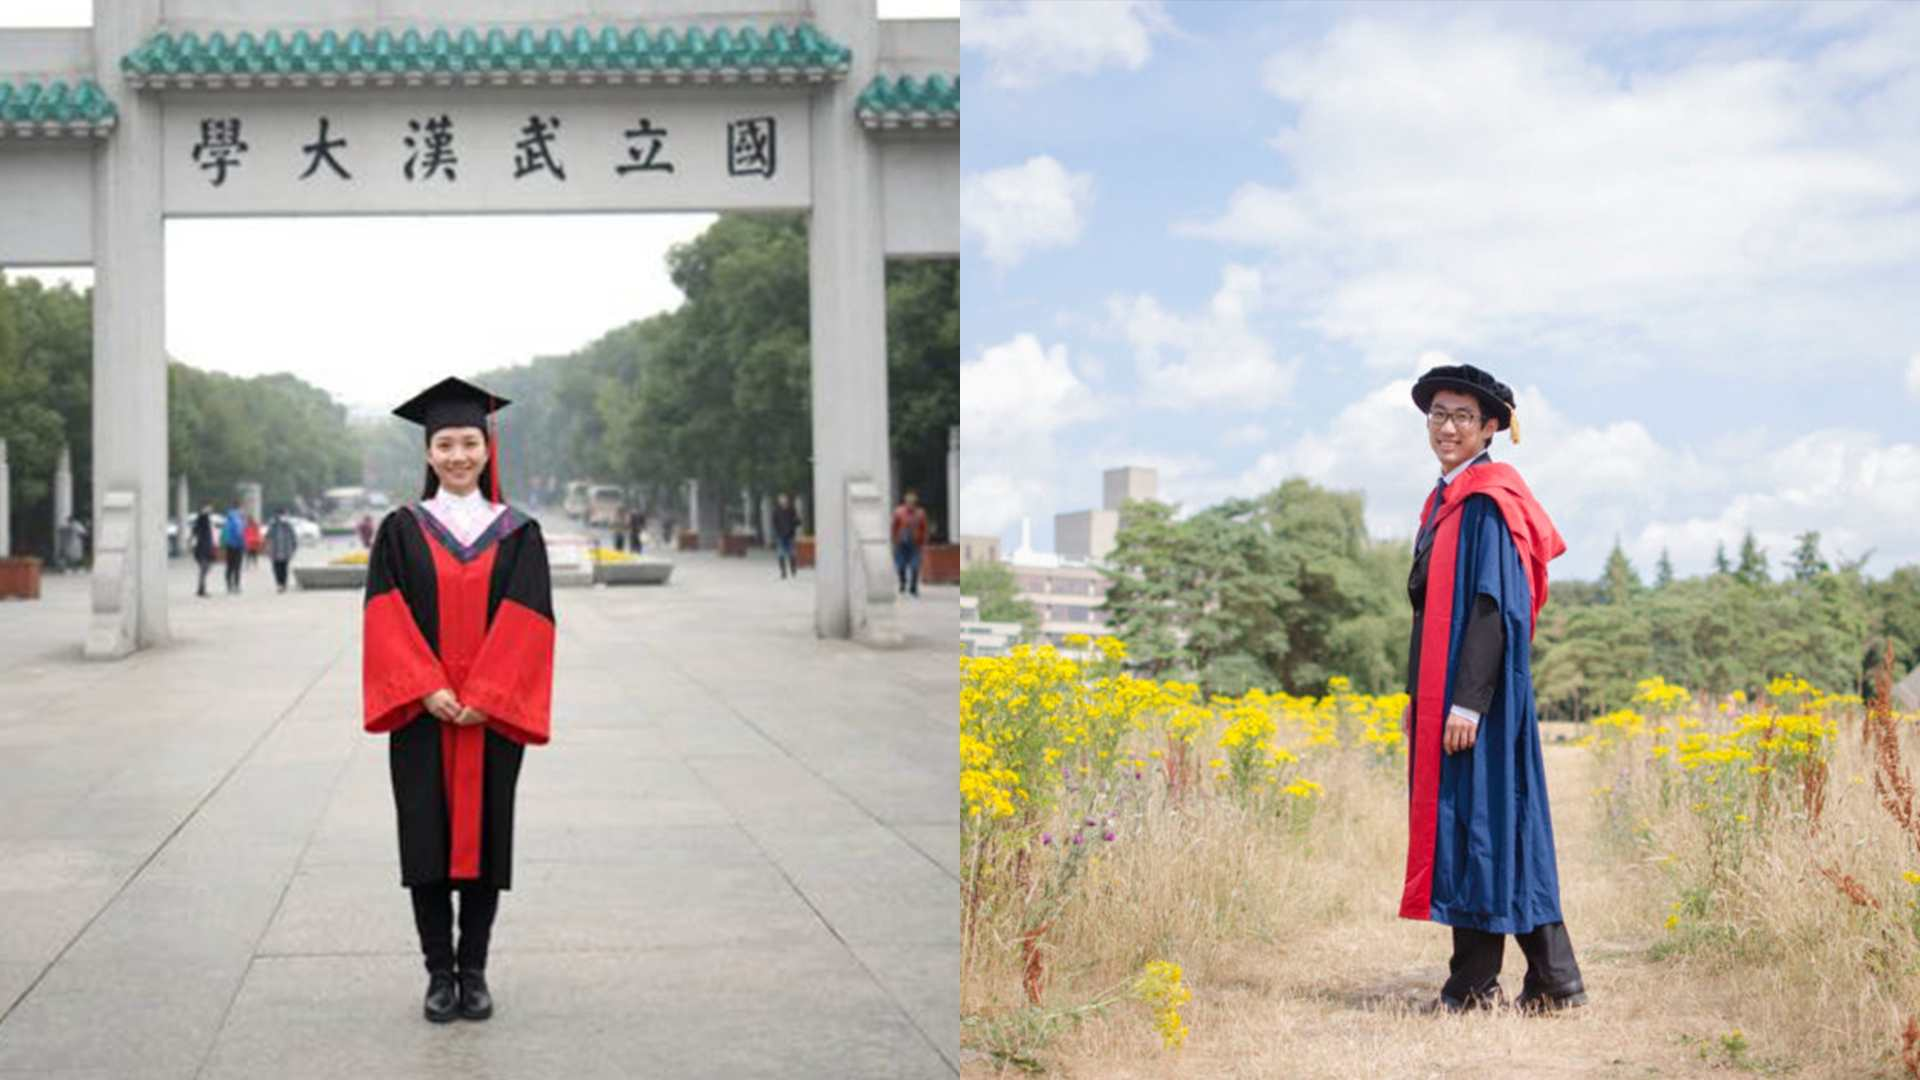 Chinese researchers clinch Green Talents award